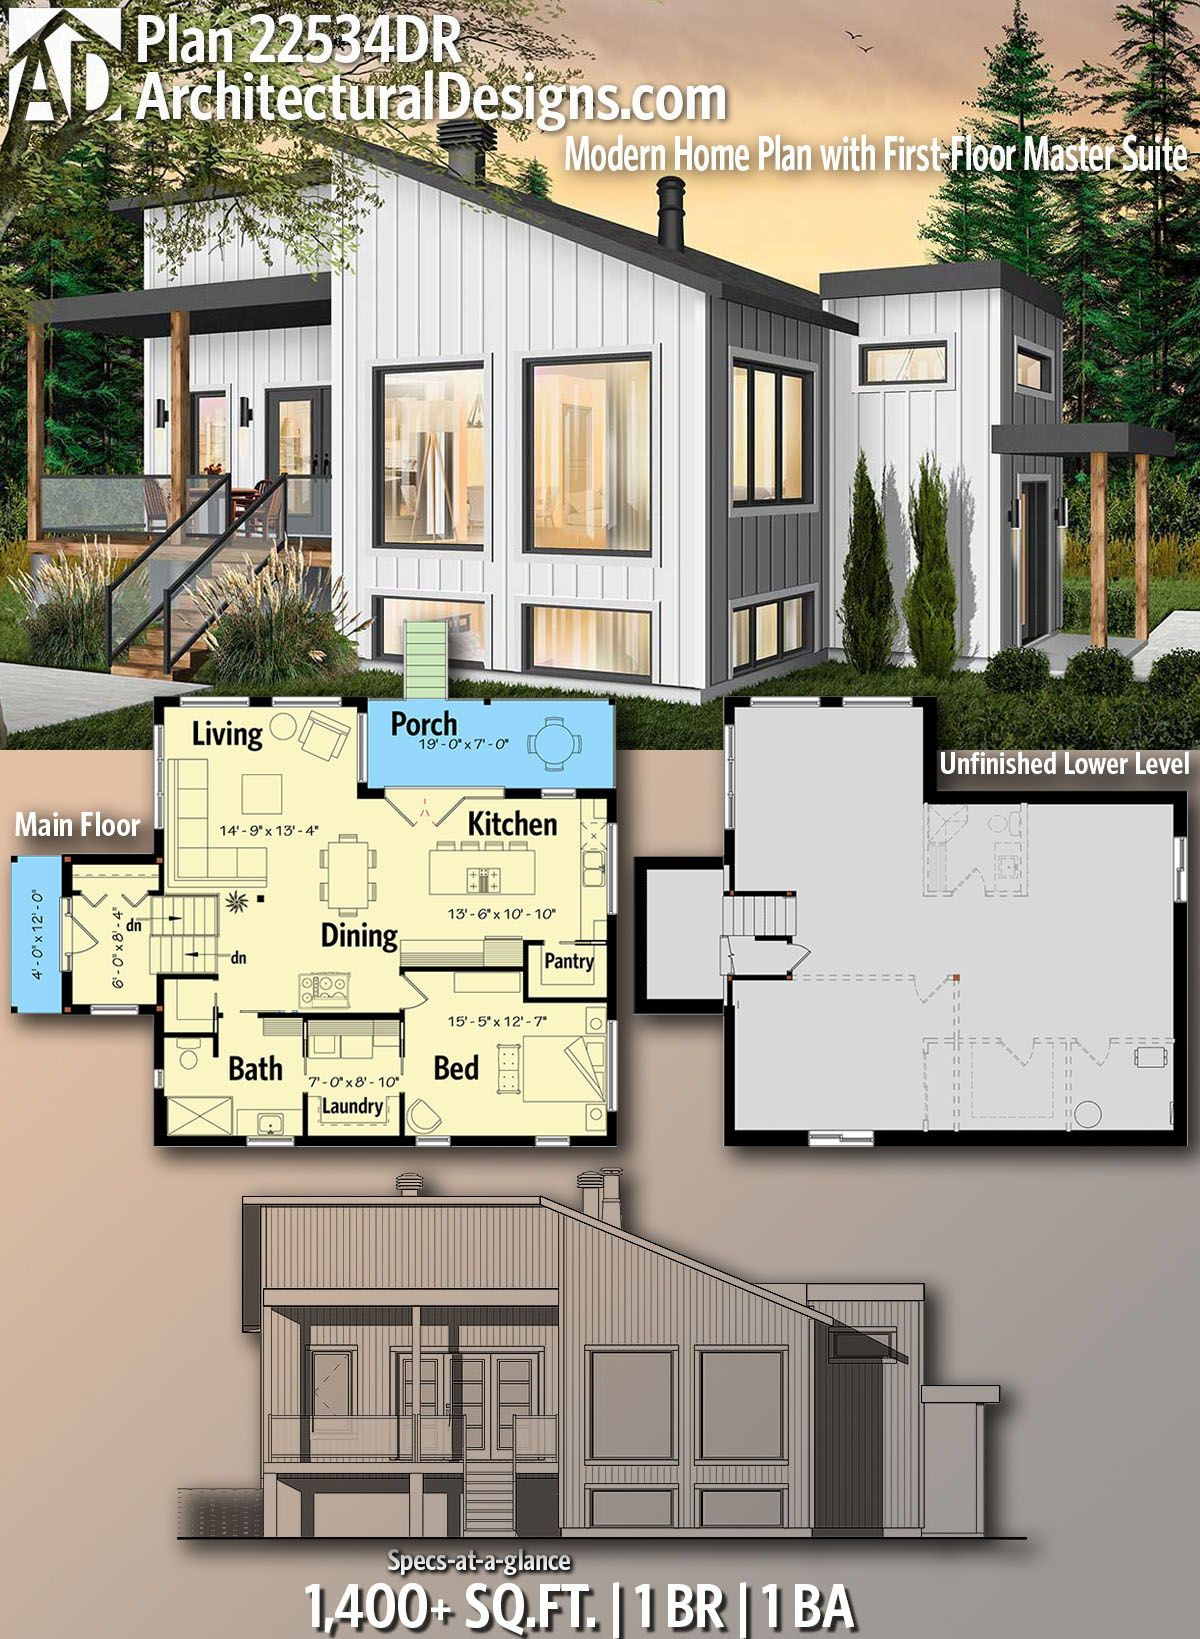 Plan 22534dr Modern Home Plan With First Floor Master Suite Modern House Plans Architecture Design House Plans